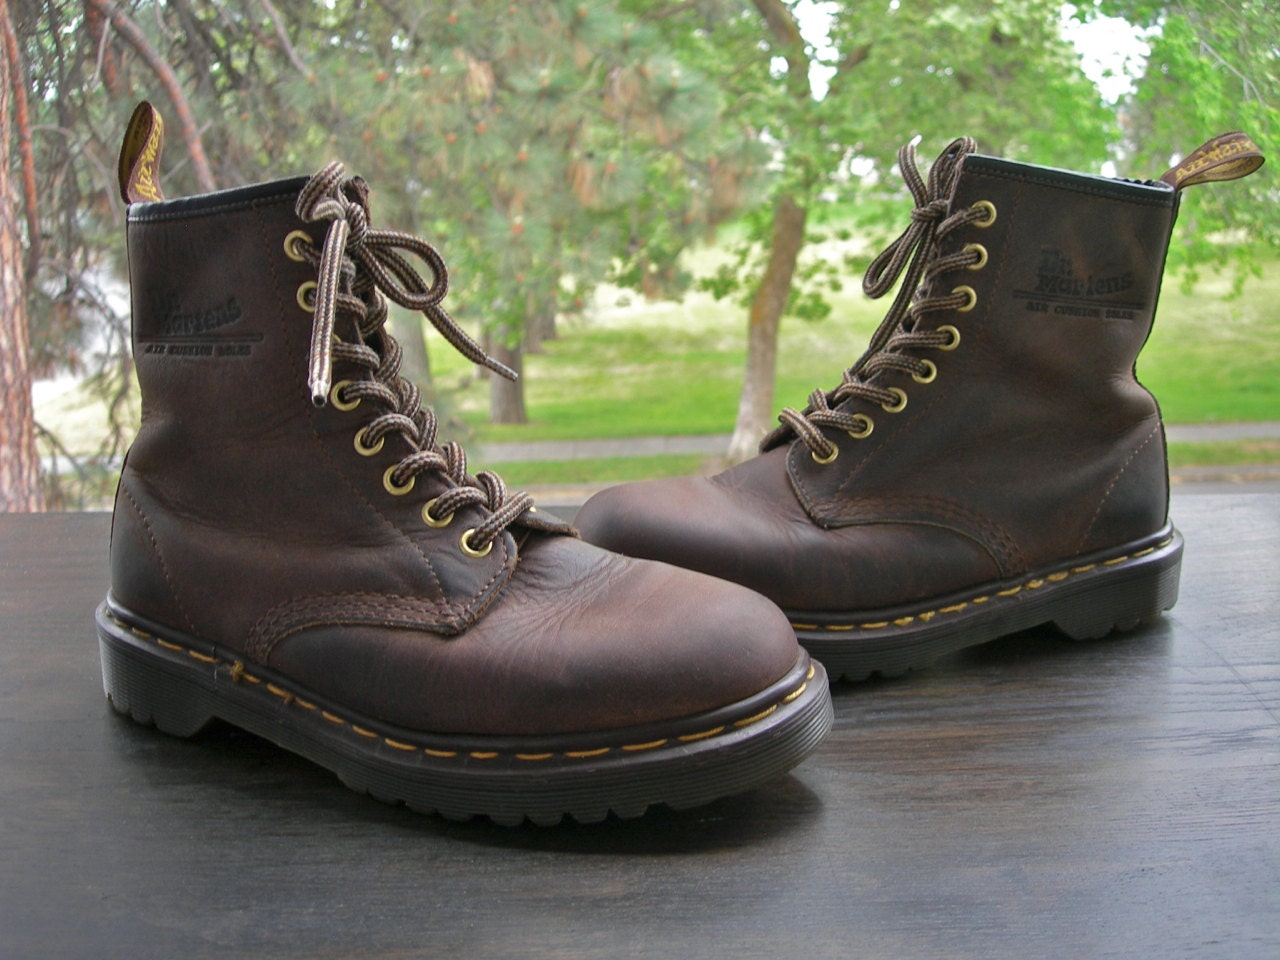 doc martens brown leather hiking boots made in by londonbay